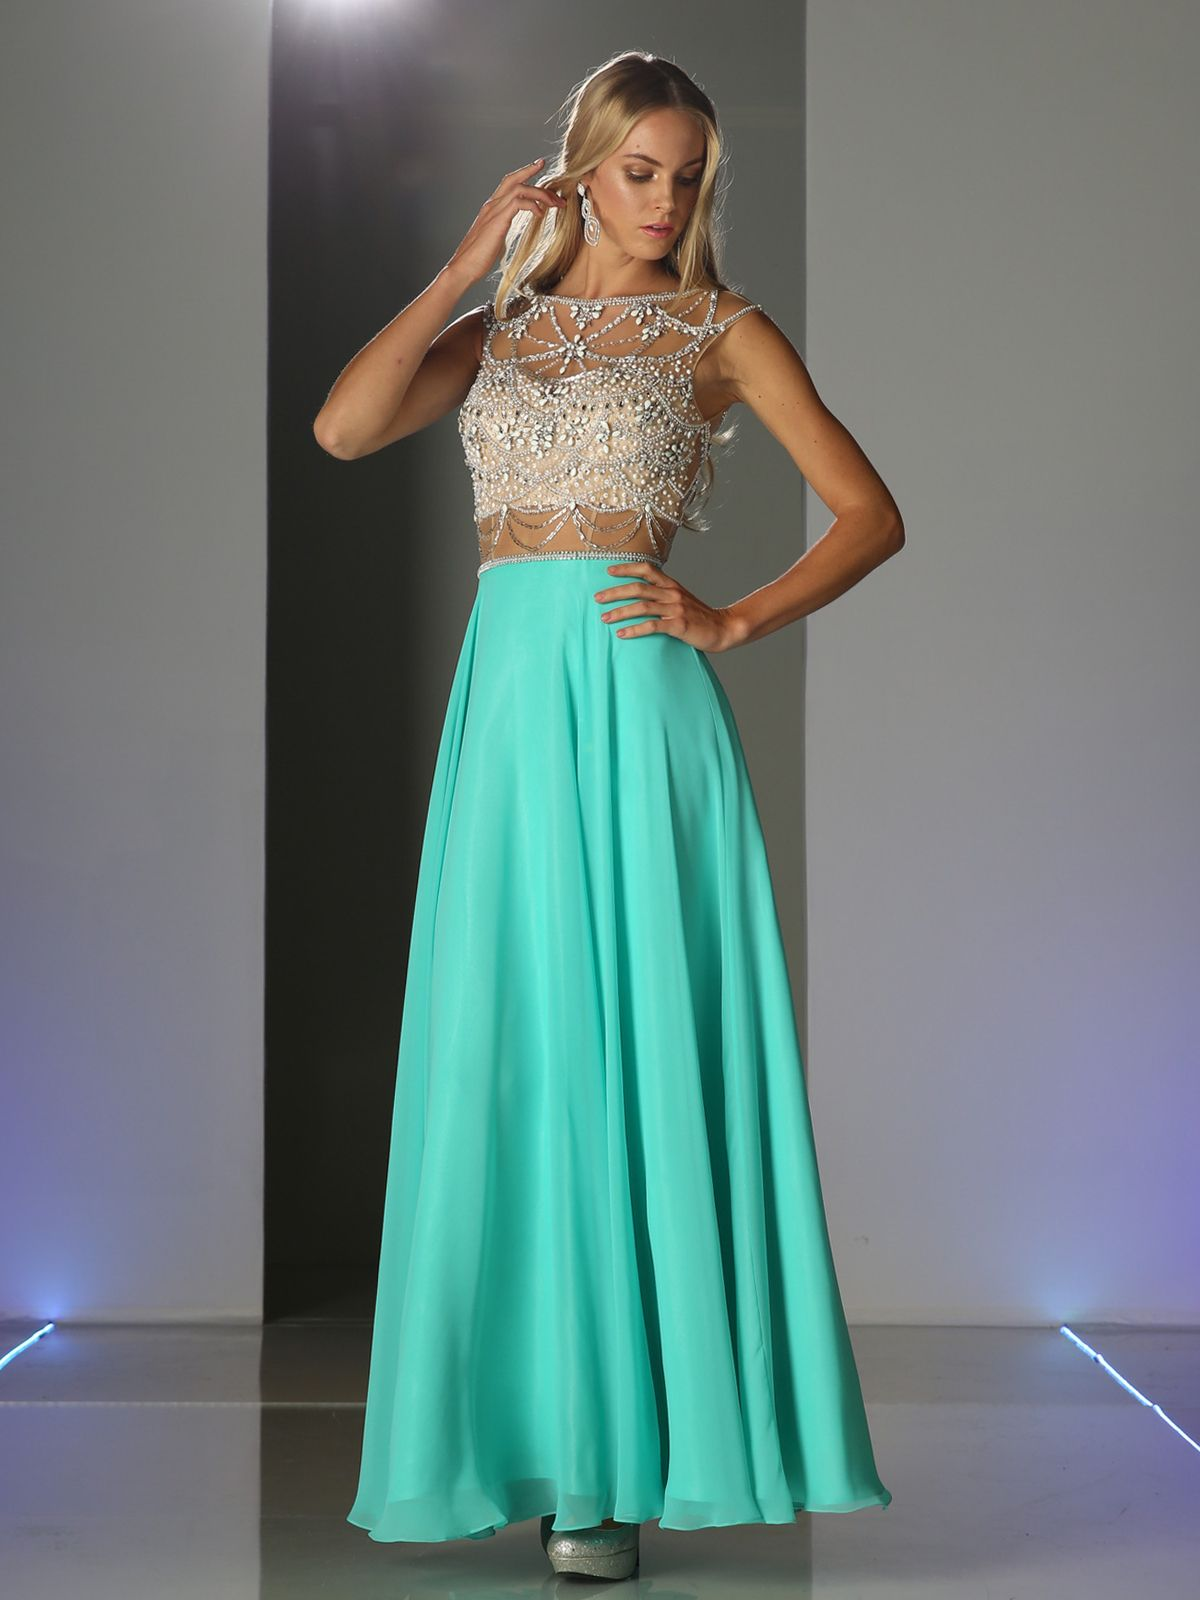 PC907 Mock Two Piece Prom Dress with Full Skirt - Mint, Front View ...